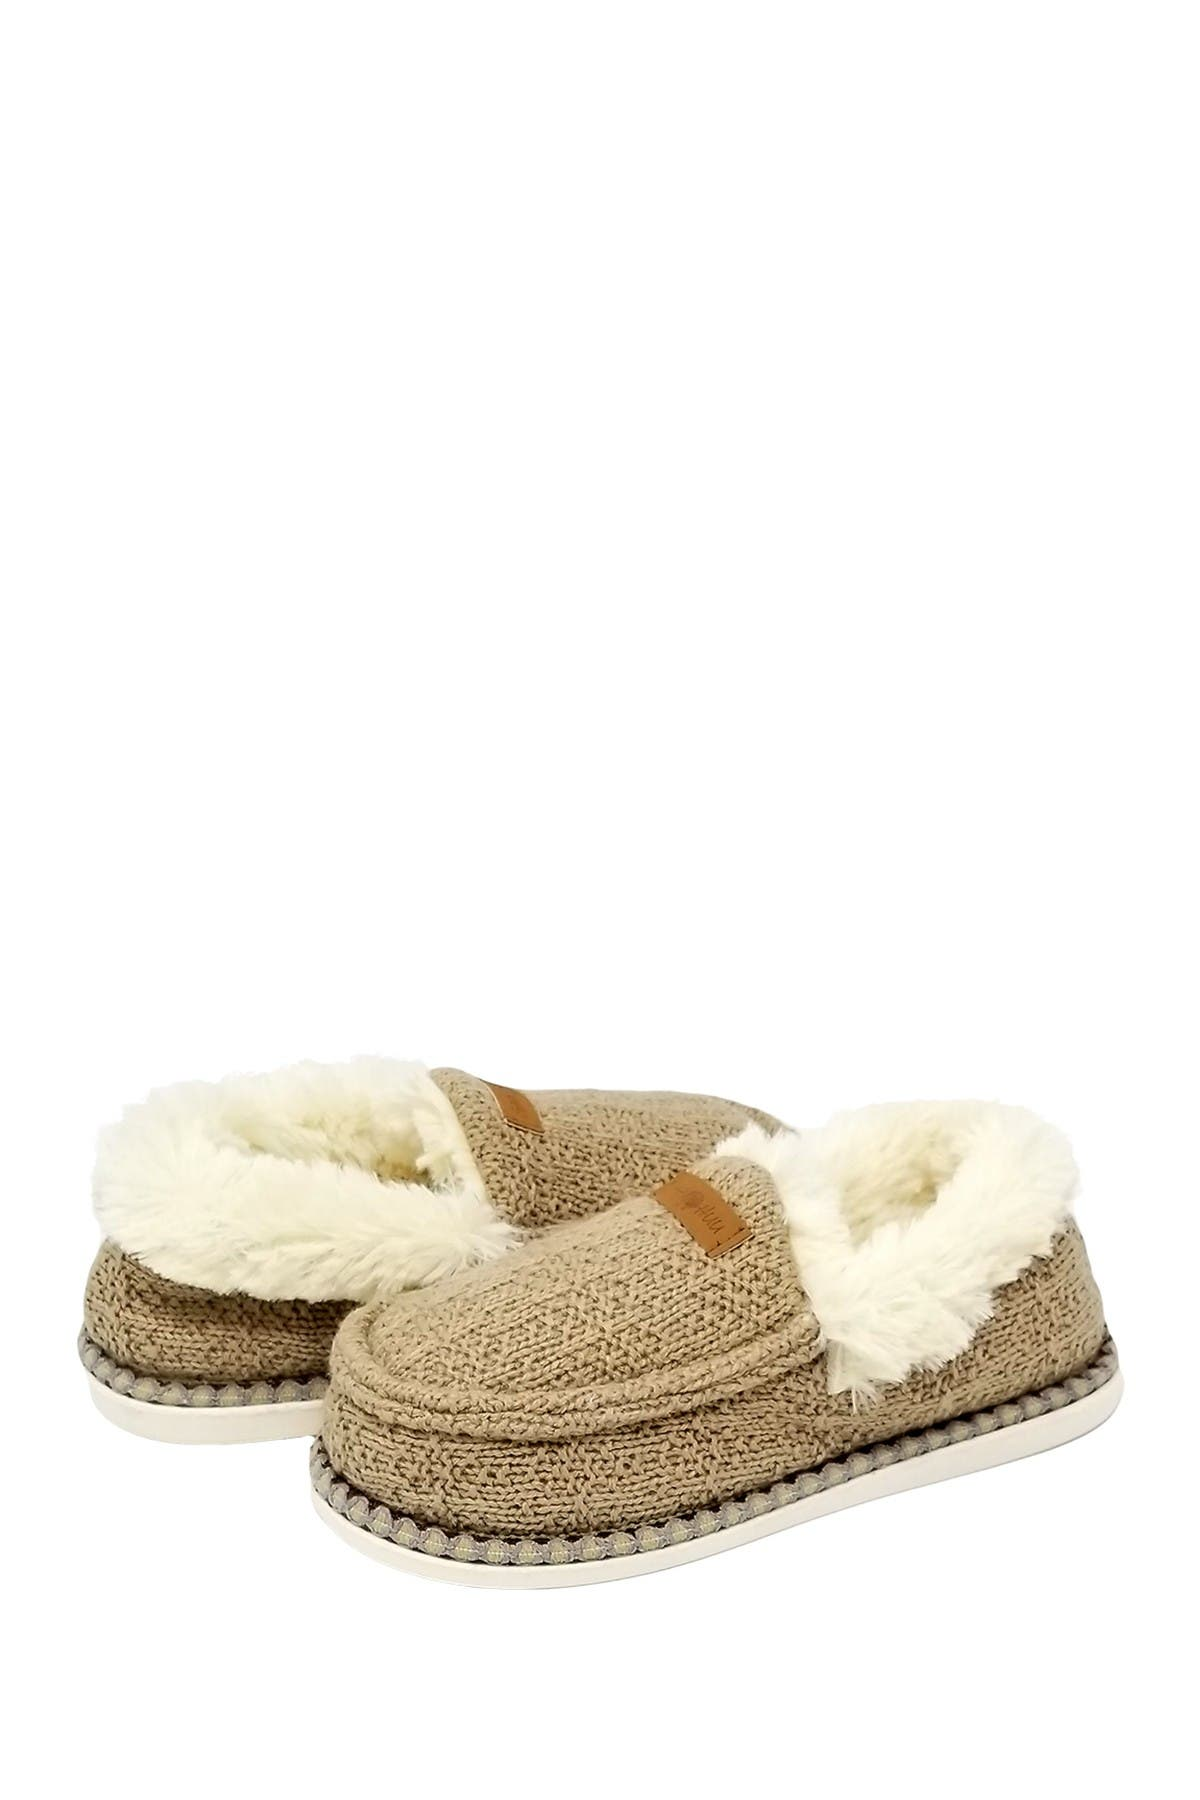 Image of GAAHUU Textured Knit Faux Fur Moccasin